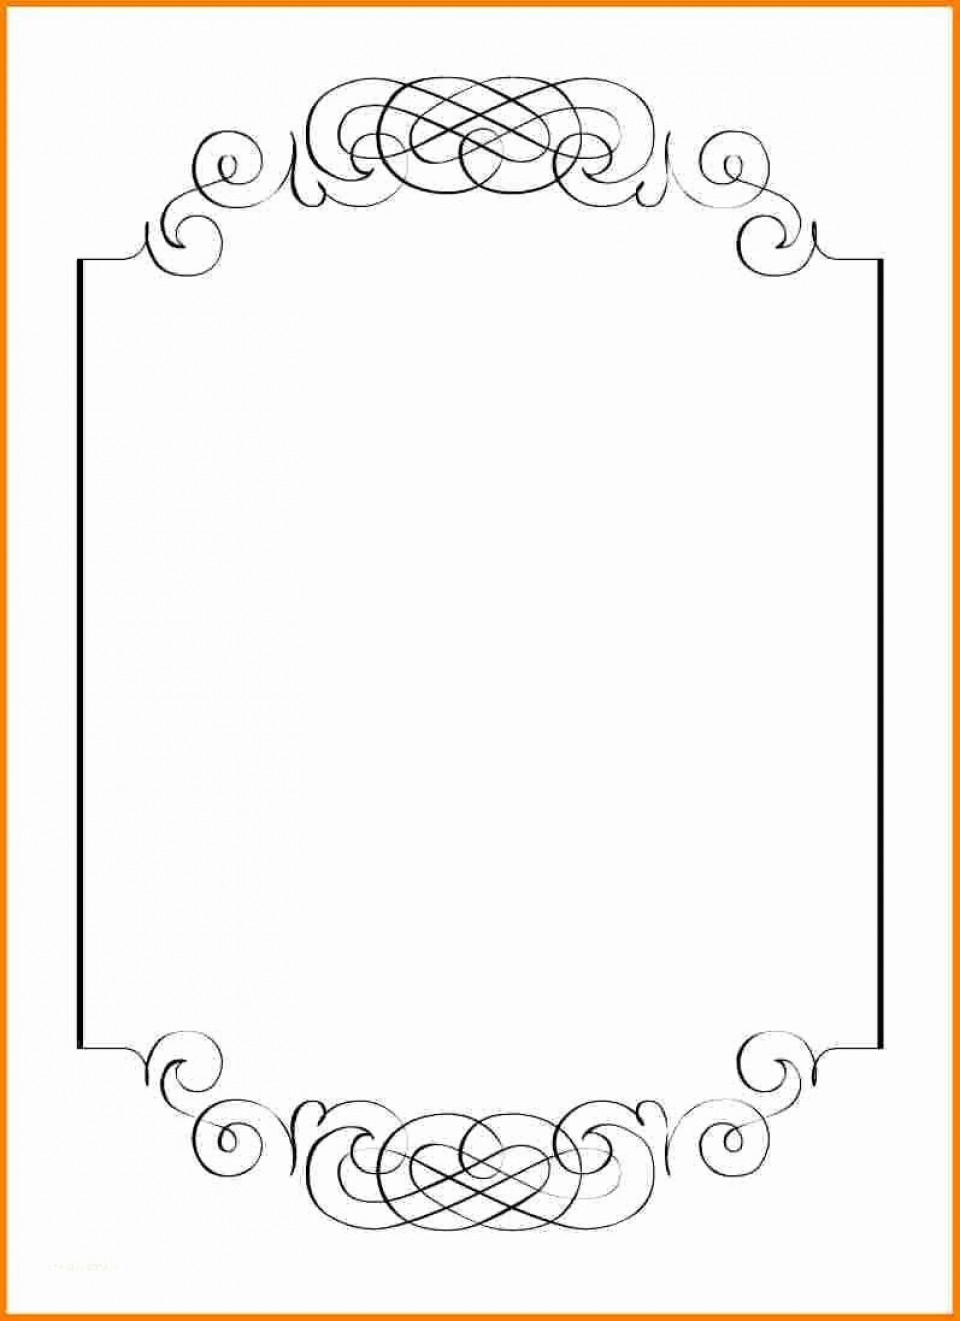 000 Rare Blank Birthday Invitation Template For Microsoft Word Photo 960